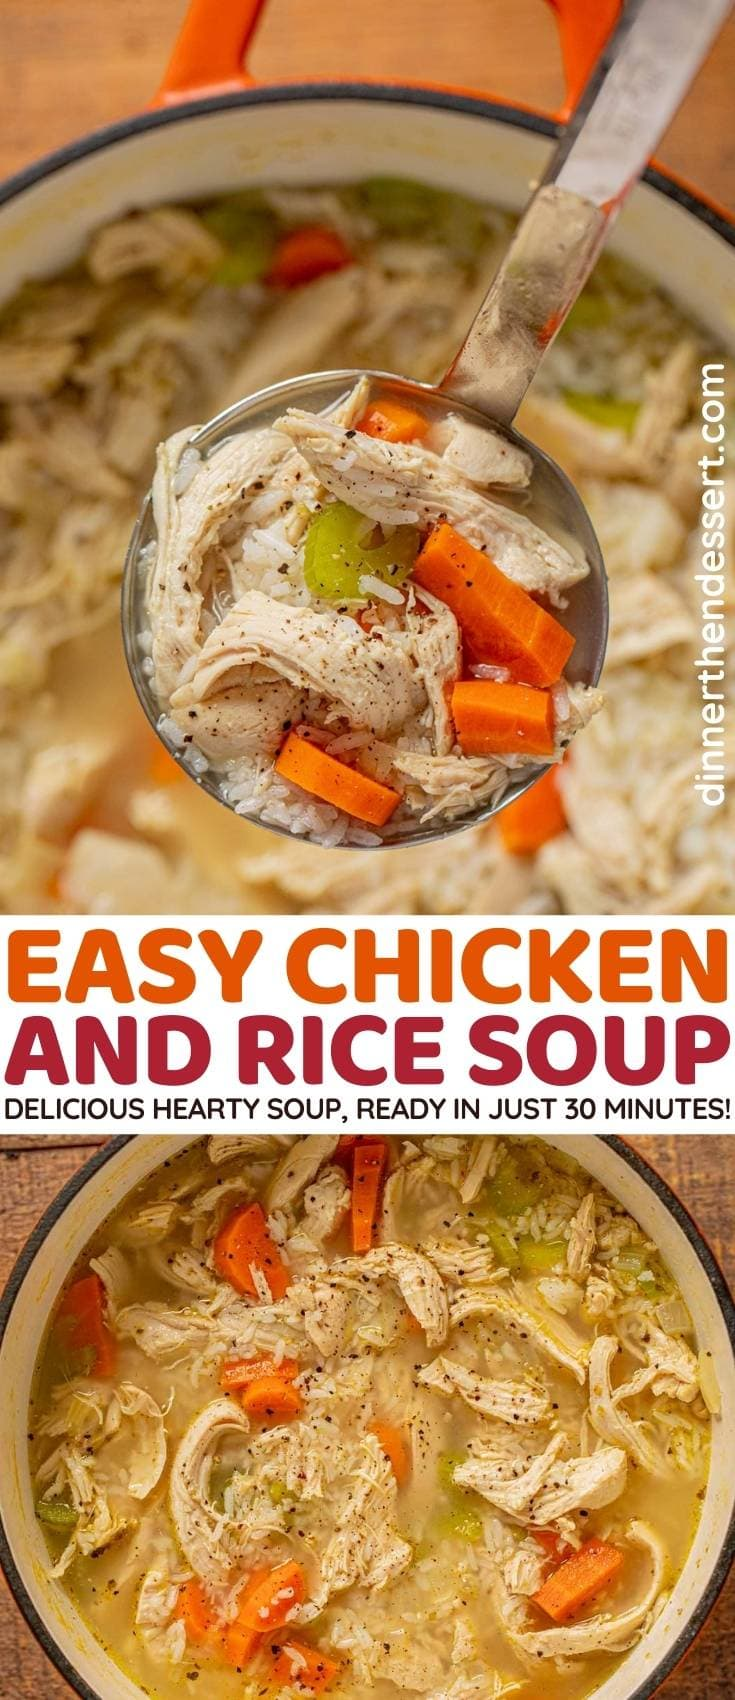 Chicken and Rice Soup FB